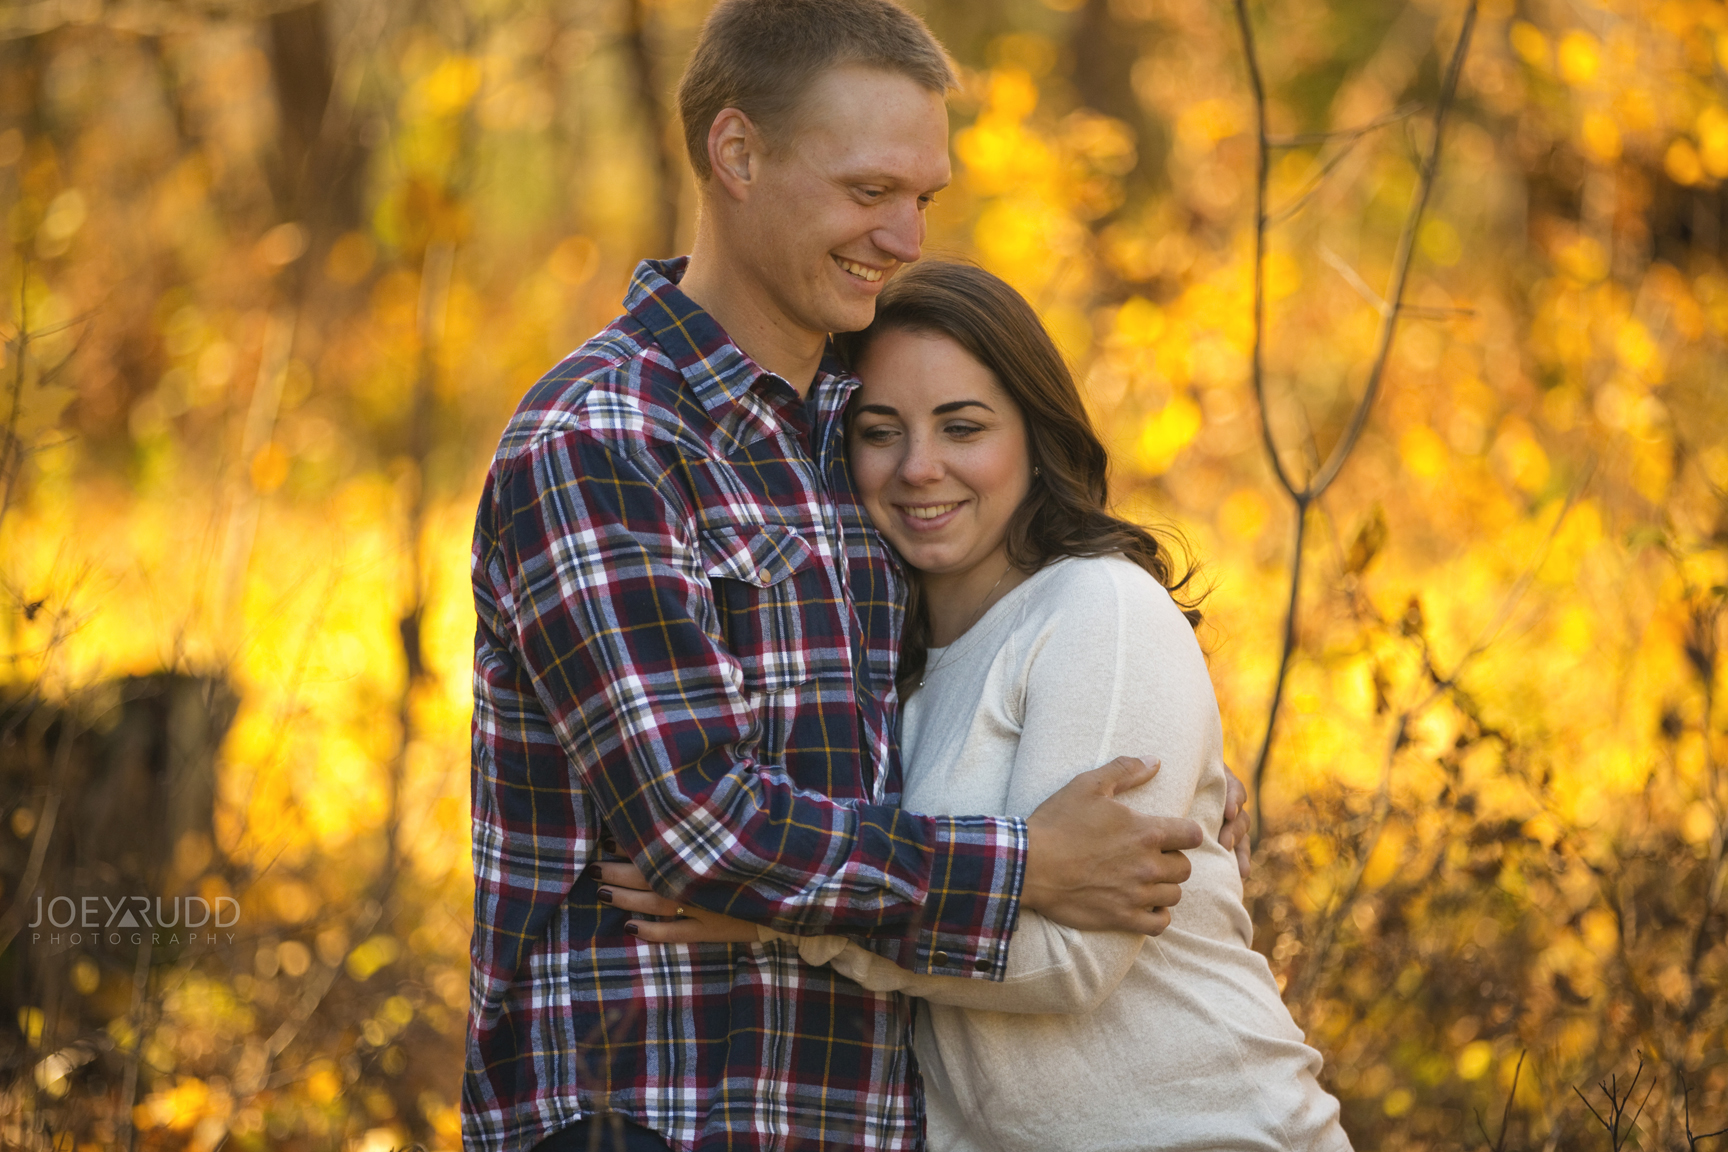 Outdoors nature engagement session in the fall by Ottawa Wedding Photographer Joey Rudd Photography